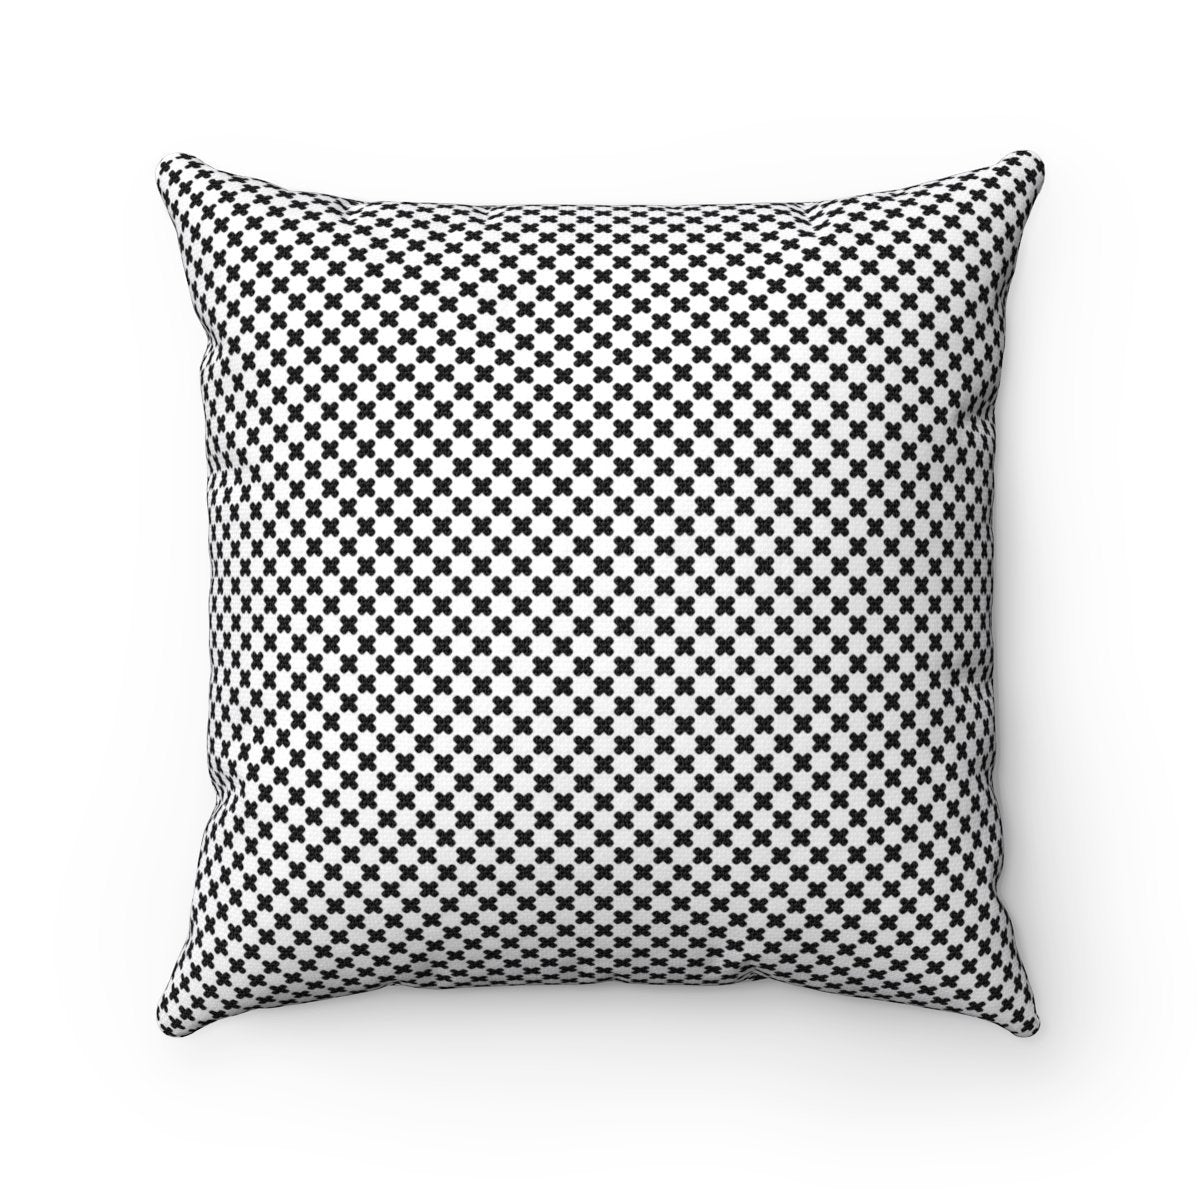 Black and White polka crosses decorative cushion cover-Home Decor - Decorative Accents - Pillows & Throws - Decorative Pillows-Maison d'Elite-14x14-Très Elite